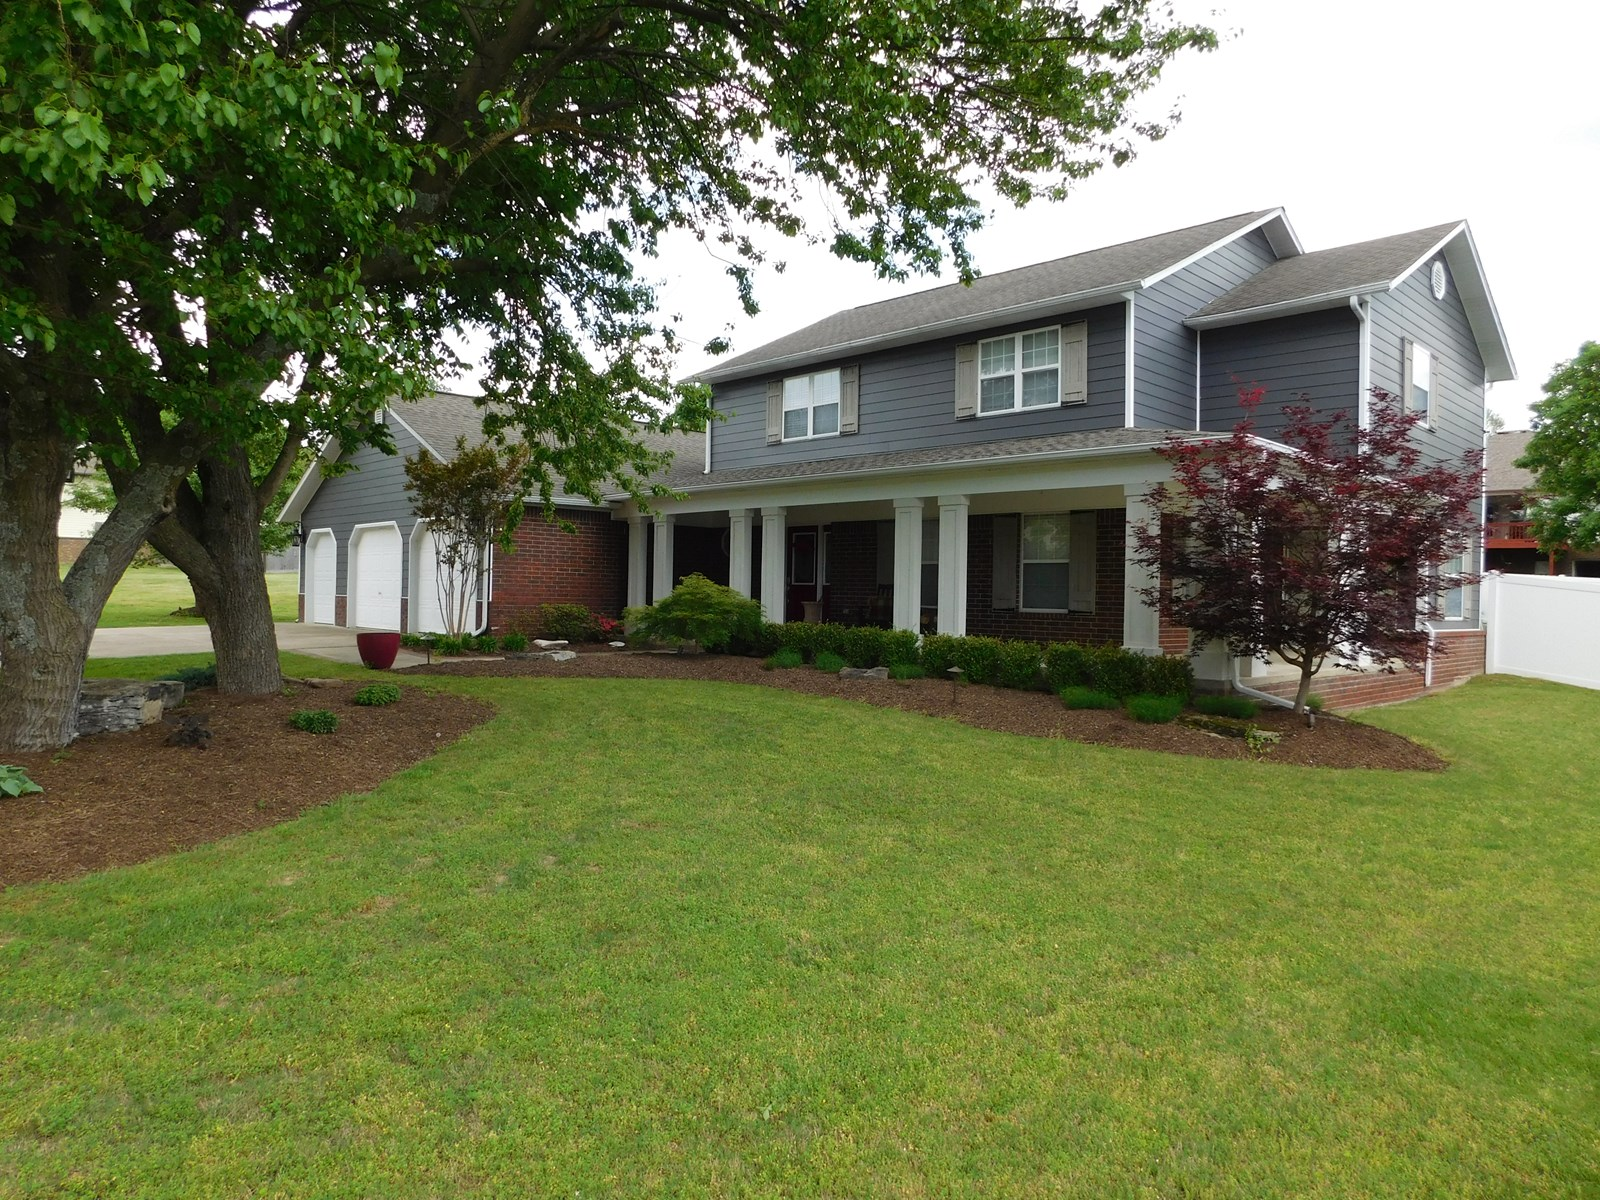 HOME IN GOLF COURSE COMMUNITY FOR SALE